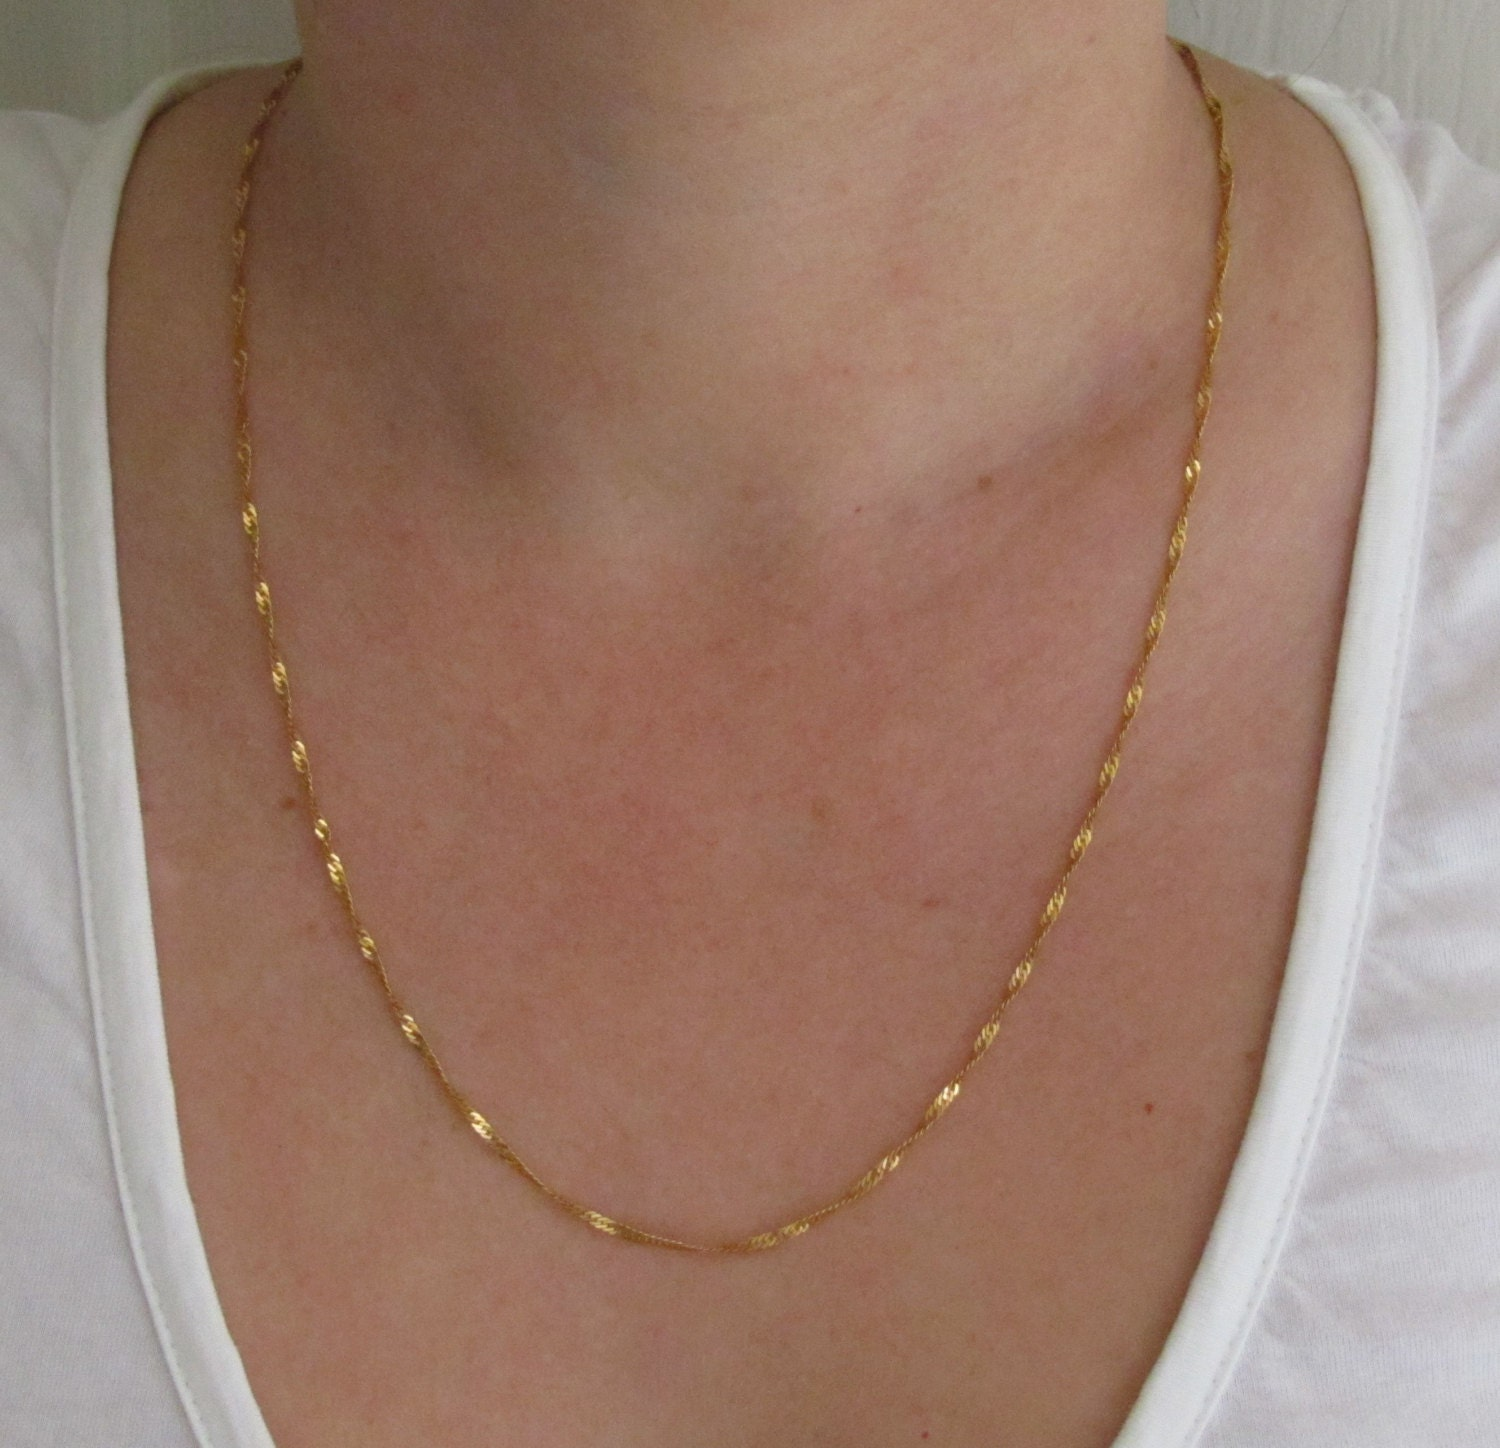 21k Solid Gold Chain Necklace 21kt Vintage Yellow Gold